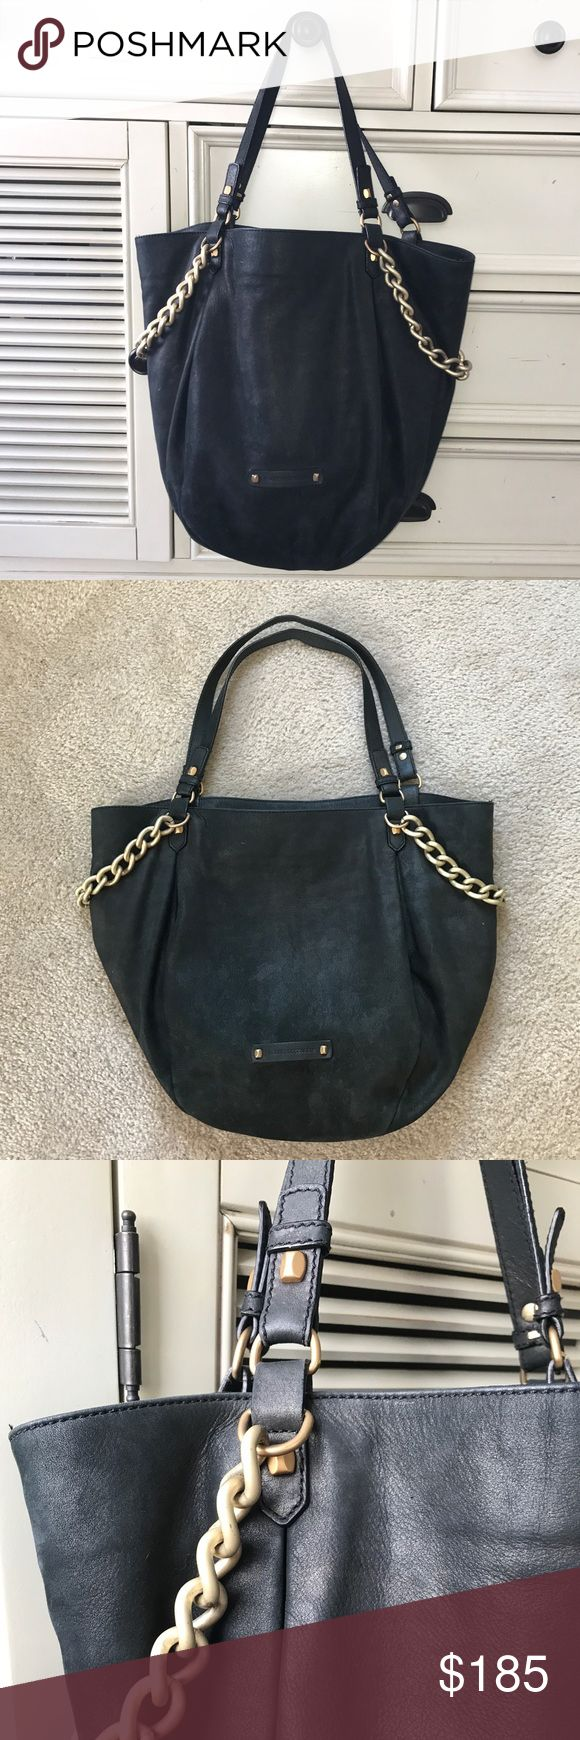 """Francesco Biasia Leather Tote Bag - Black Francesco Biasia Leather Tote Bag. Soft Italian leather with subtle metallic sheen. Gold chain detail on sides. Three inside pockets, one zippered. Shows no wear, I hardly ever used it. Measures 17"""" wide, 14"""" tall with 10"""" drop. Francesco Biasia Bags Totes"""